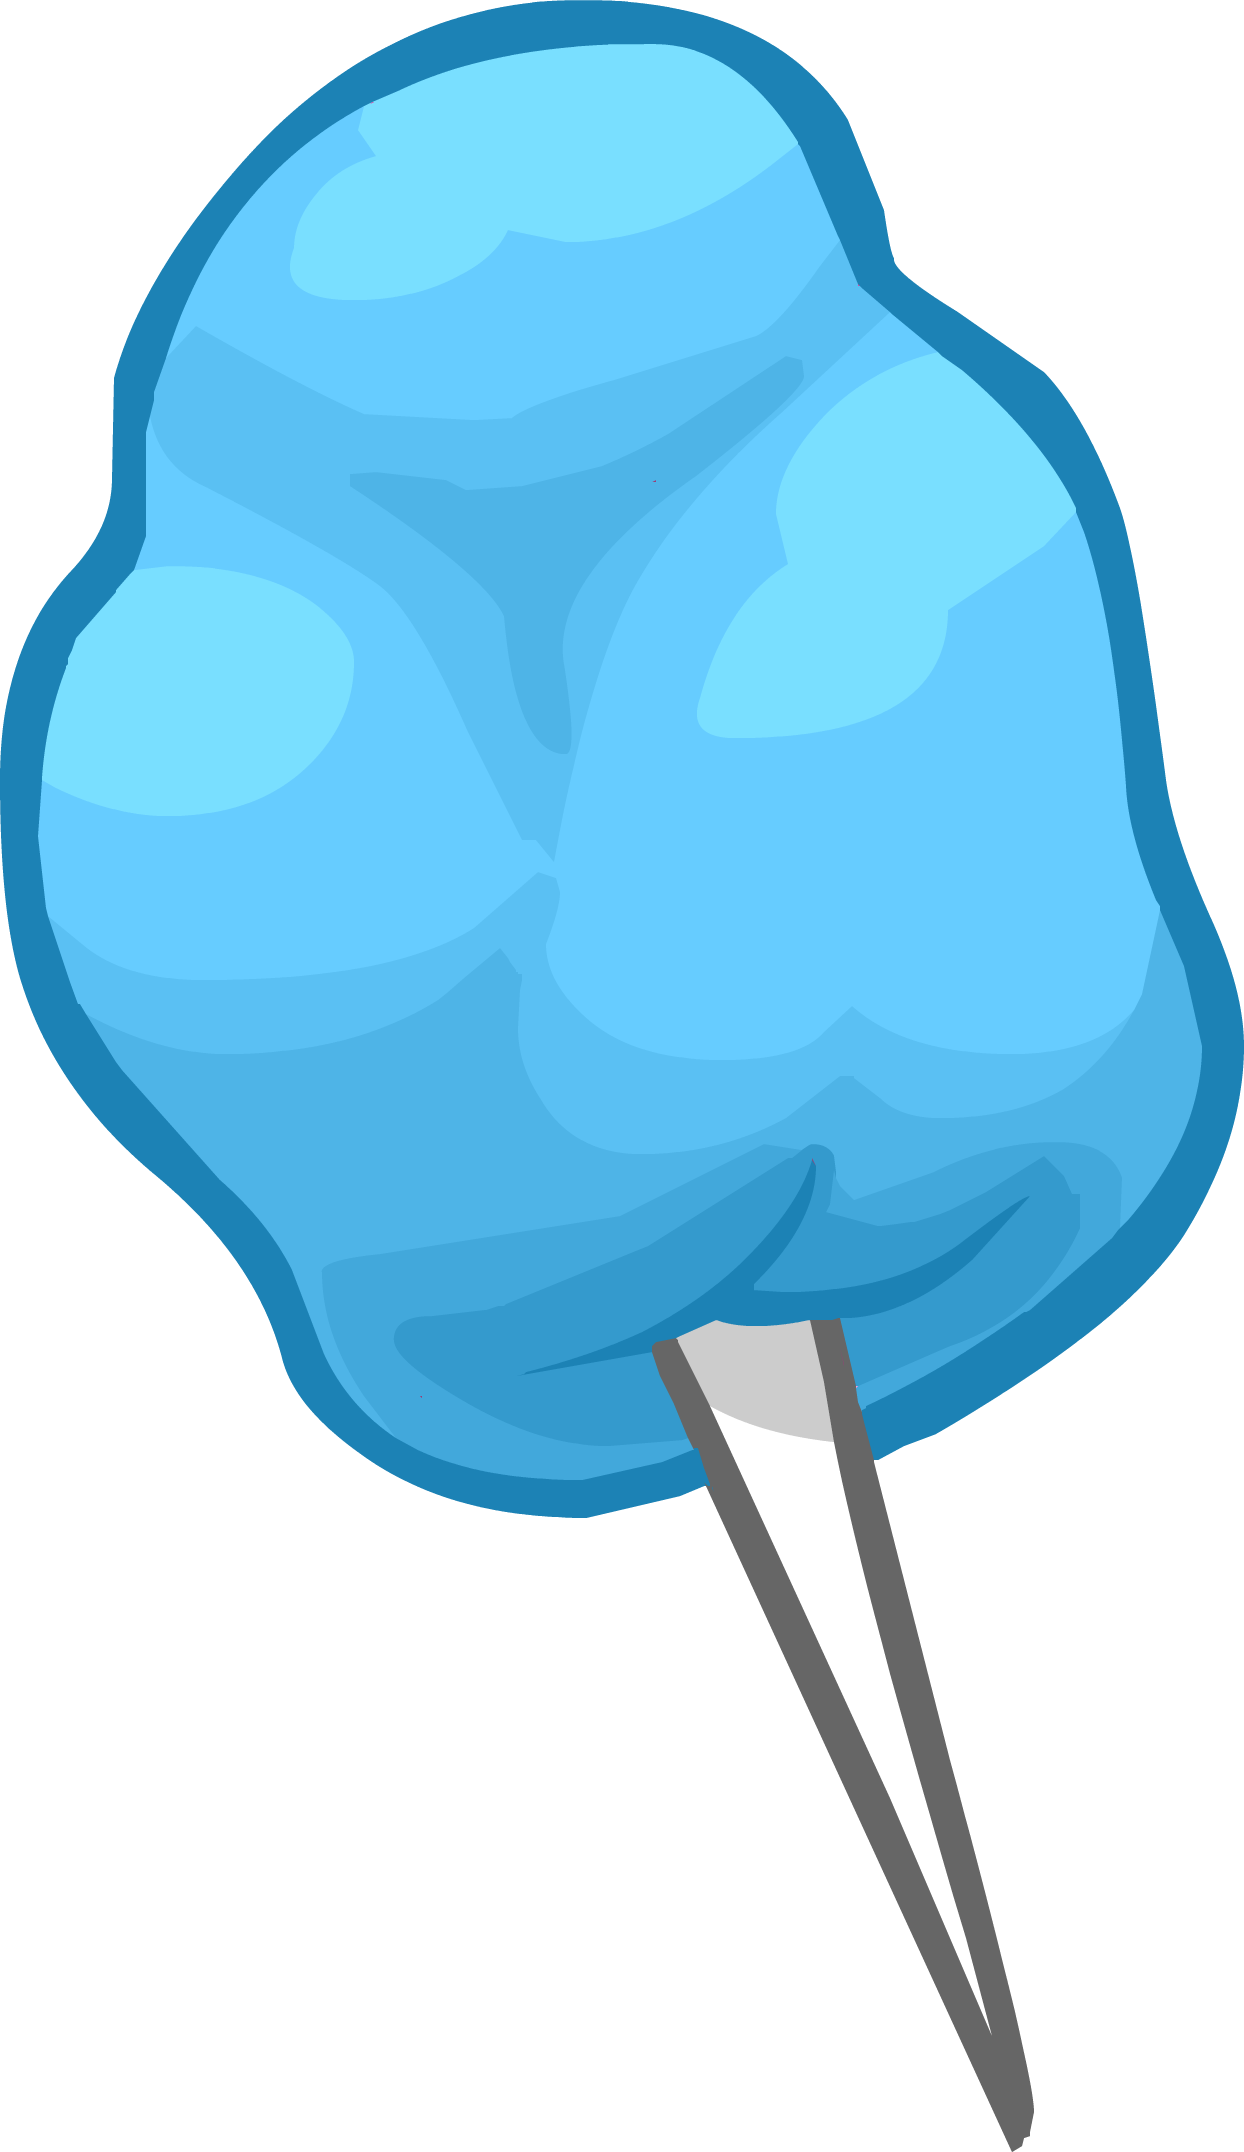 Cotton candy png. Image blue club penguin